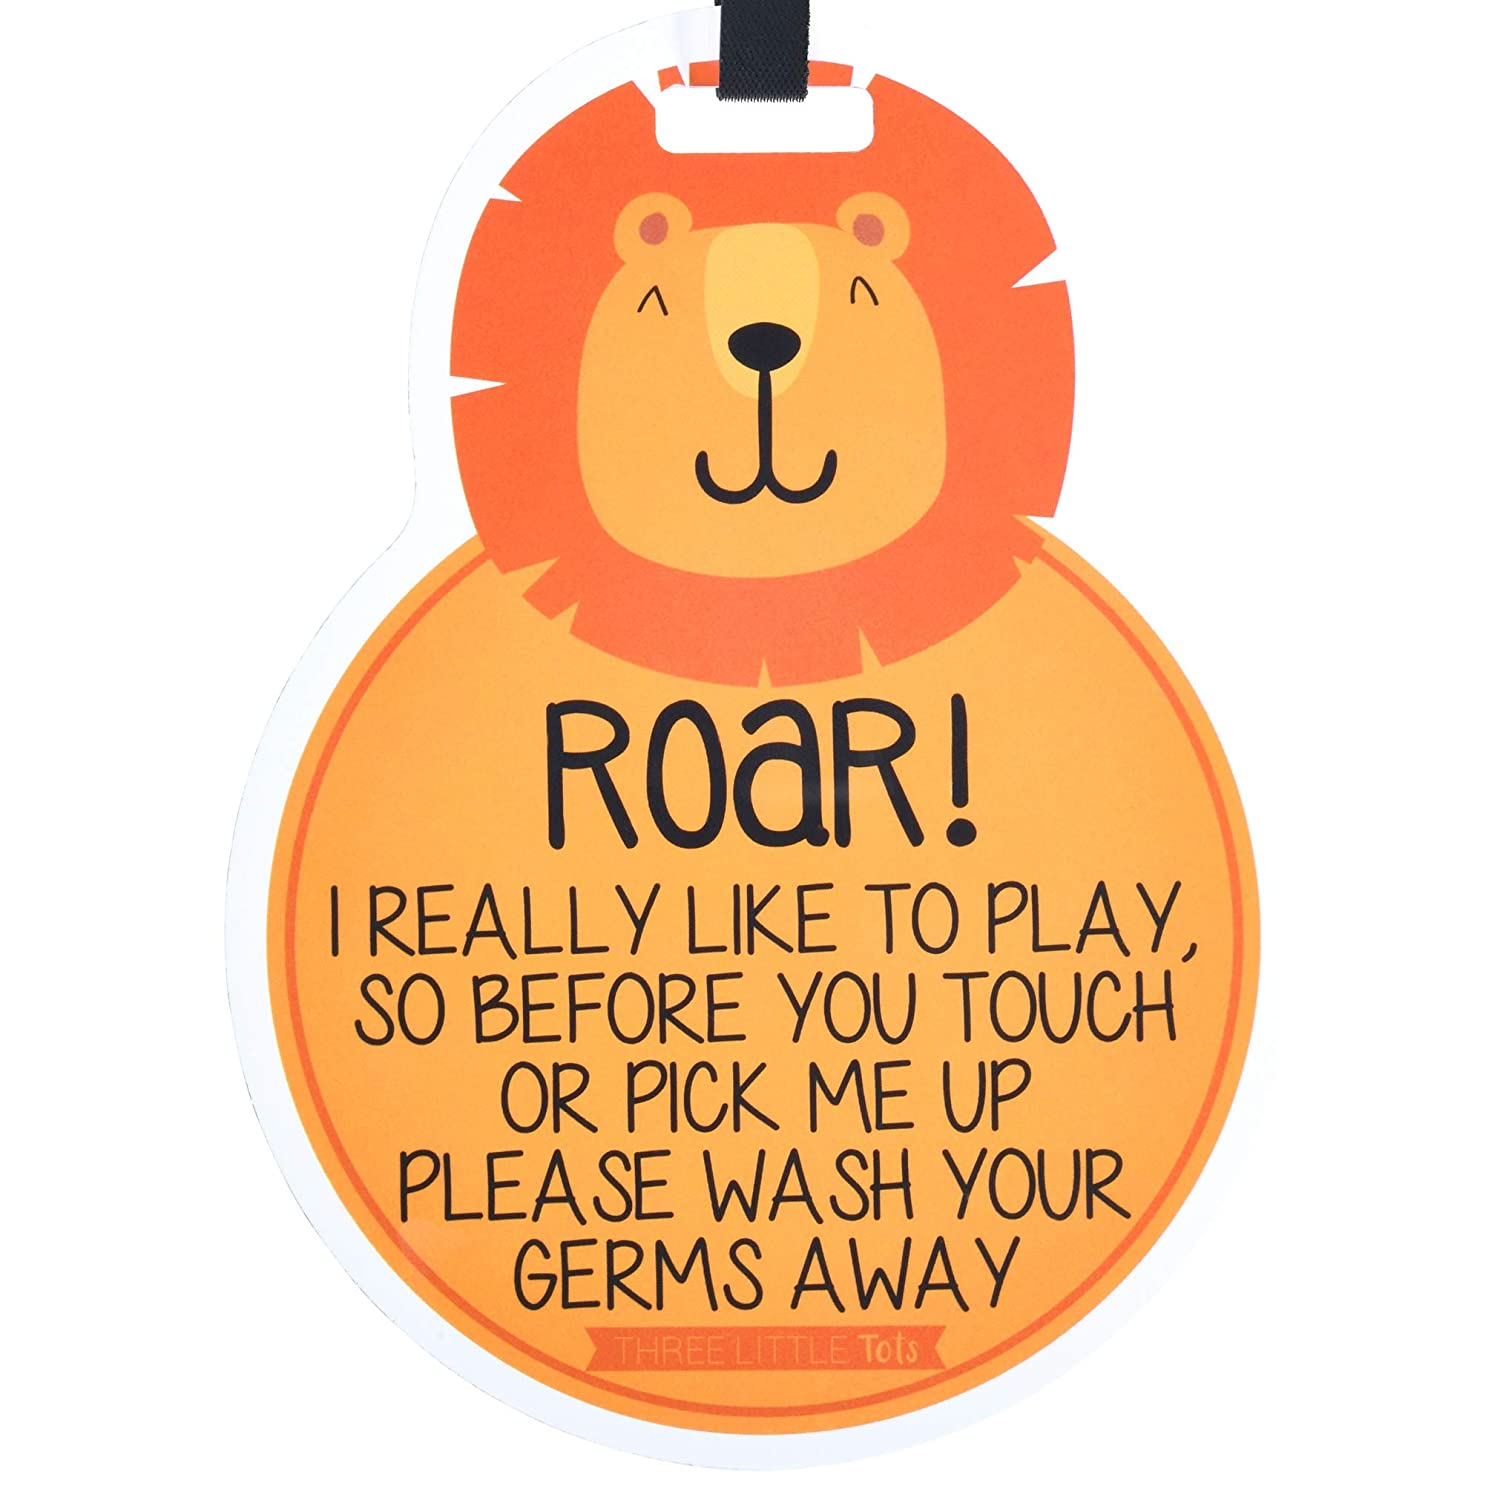 THREE LITTLE TOTS – Animal Theme No Touching Baby Car Seat Sign or Stroller Tag - CPSIA Safety Tested (Lion)